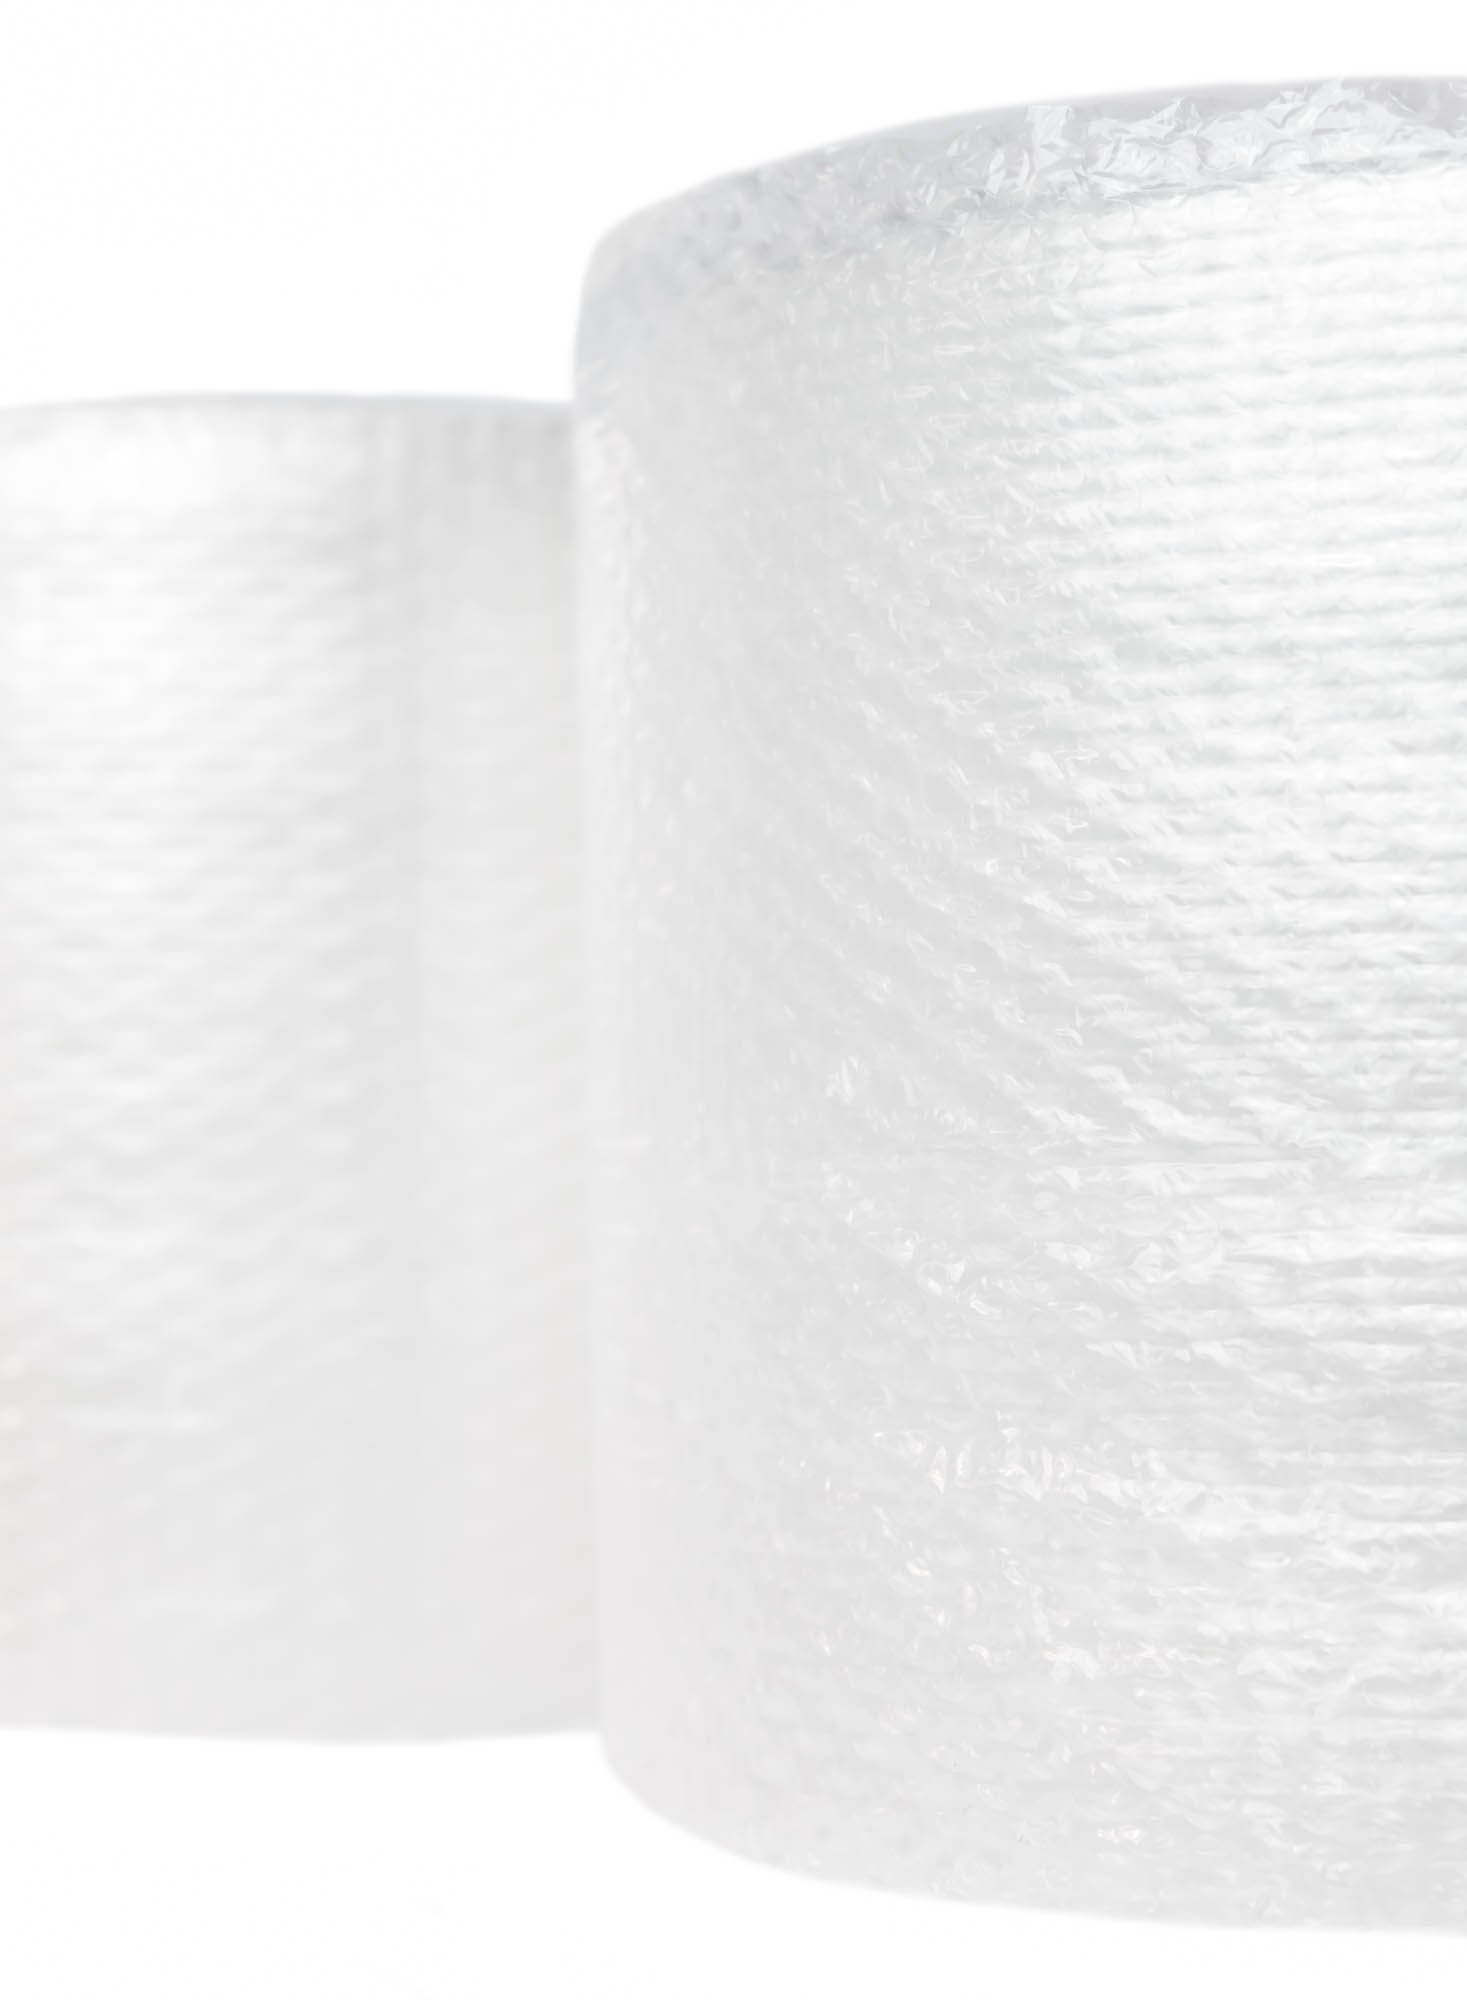 Small 3/16 inch Bubble Cushioning Wrap Slit 12 by 12 Perf 525 Foot Roll Lightweight Protective Packaging Material in Rolls/Perforated Sheets for Moving, Shipping, Padding and Packaging by B2Bboxes (Image #4)